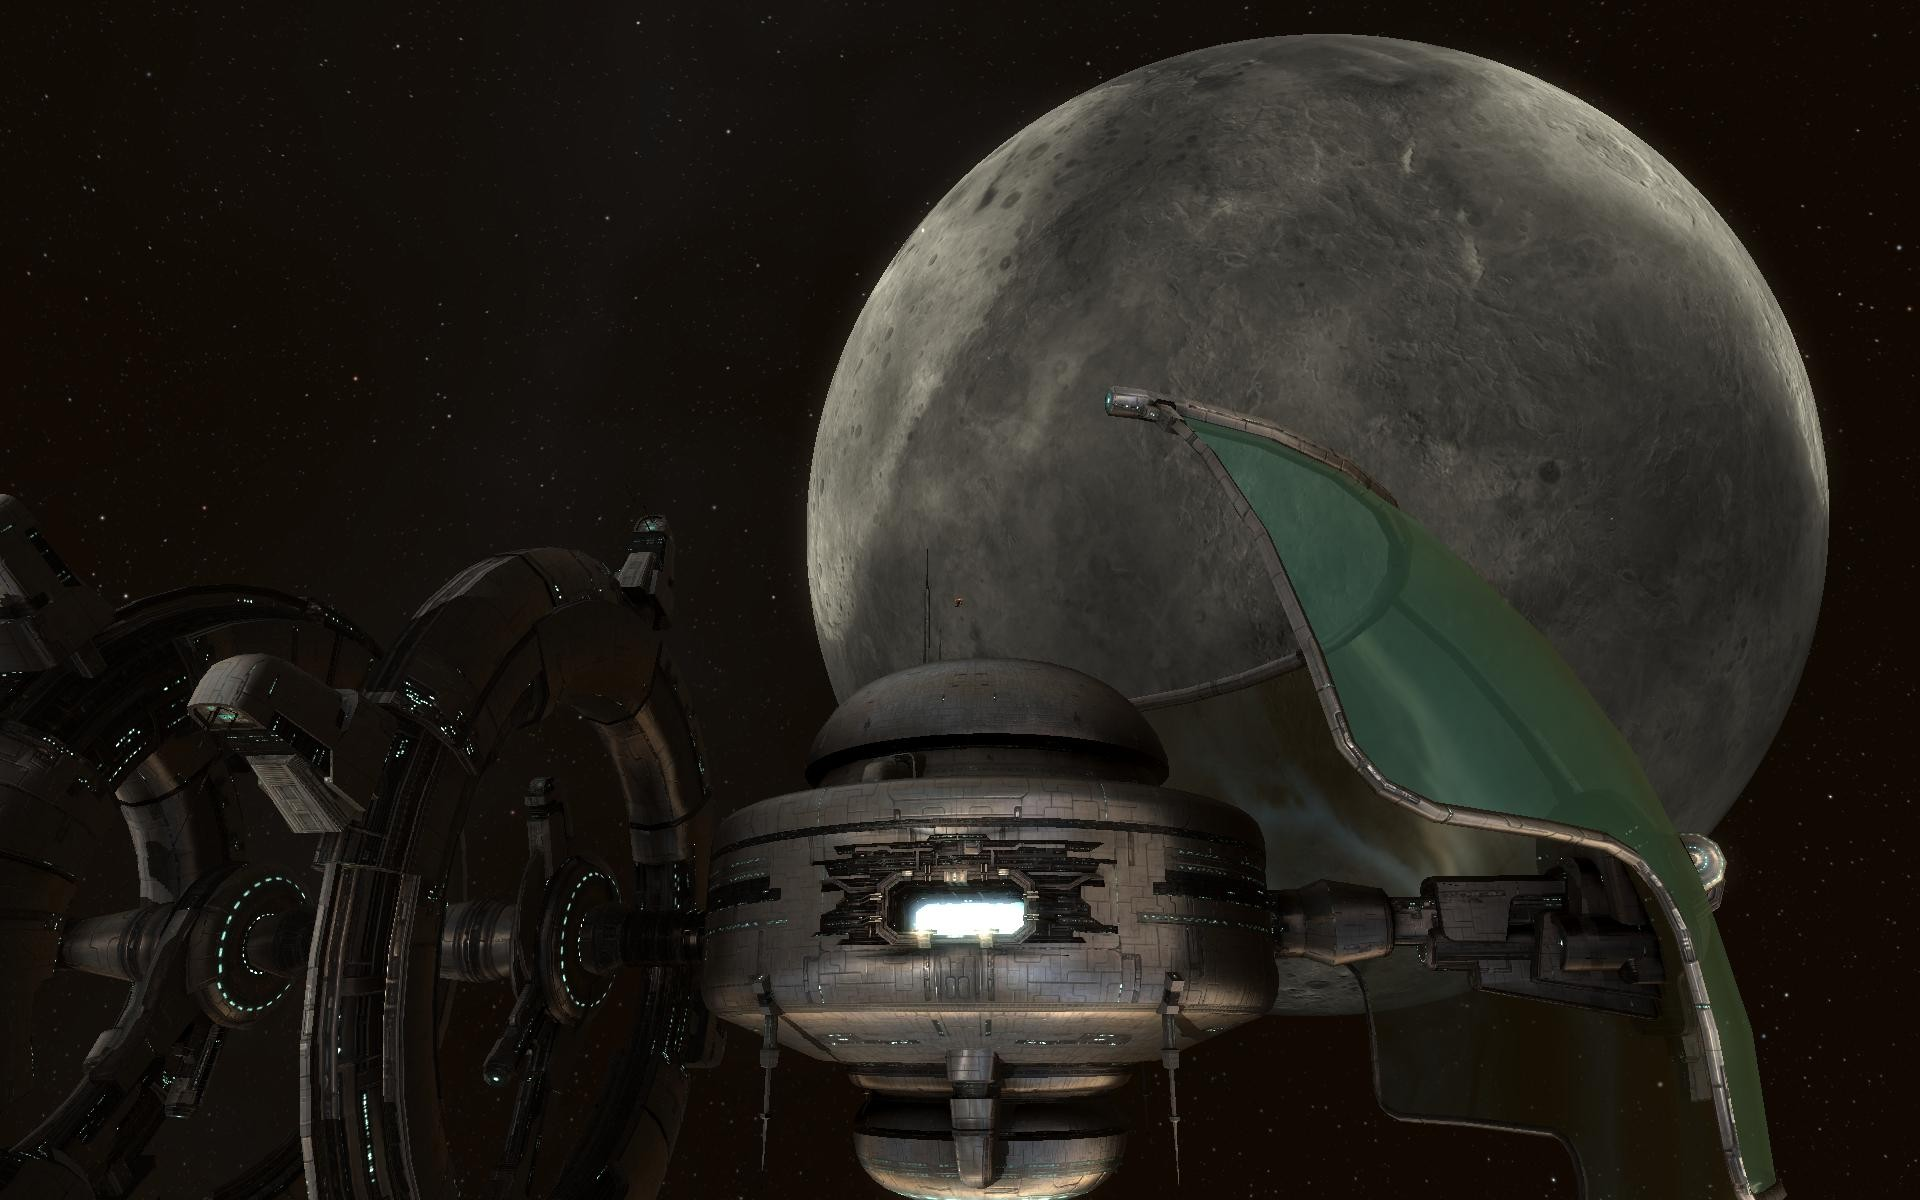 EVE Online - Pretty moon